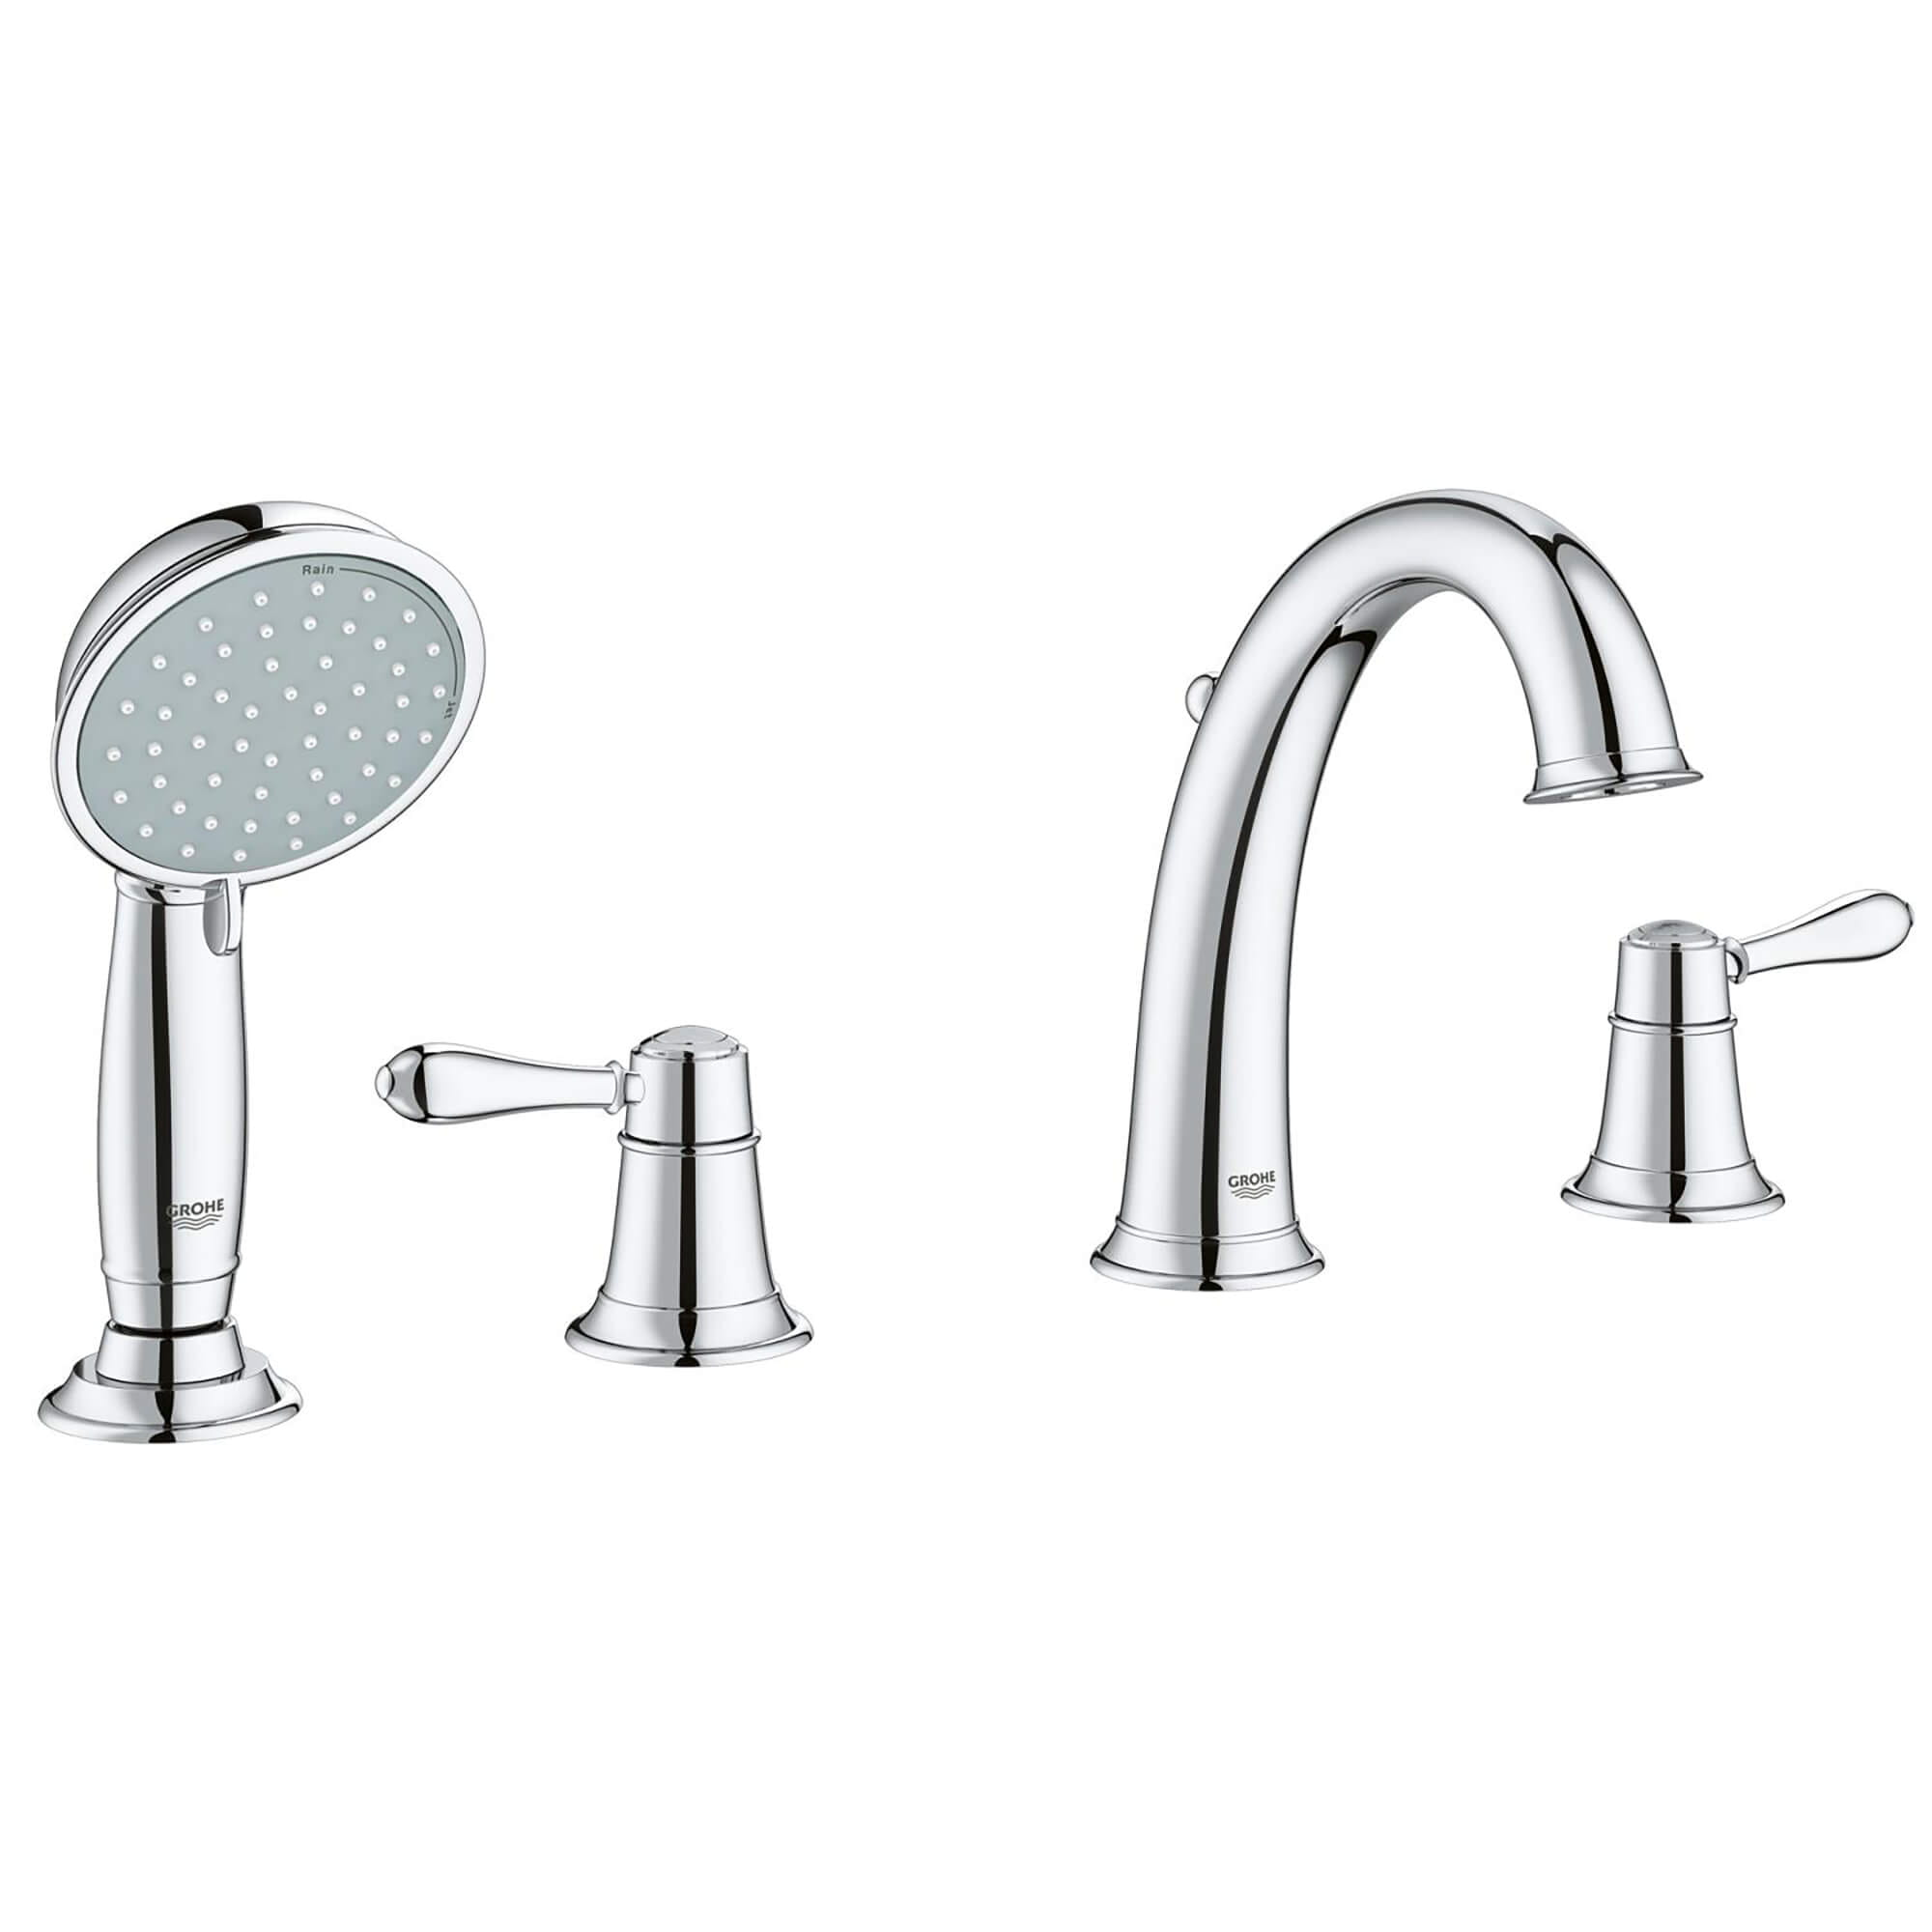 4 hole 2 handle deck mount roman tub faucet with 2 0 gpm hand shower